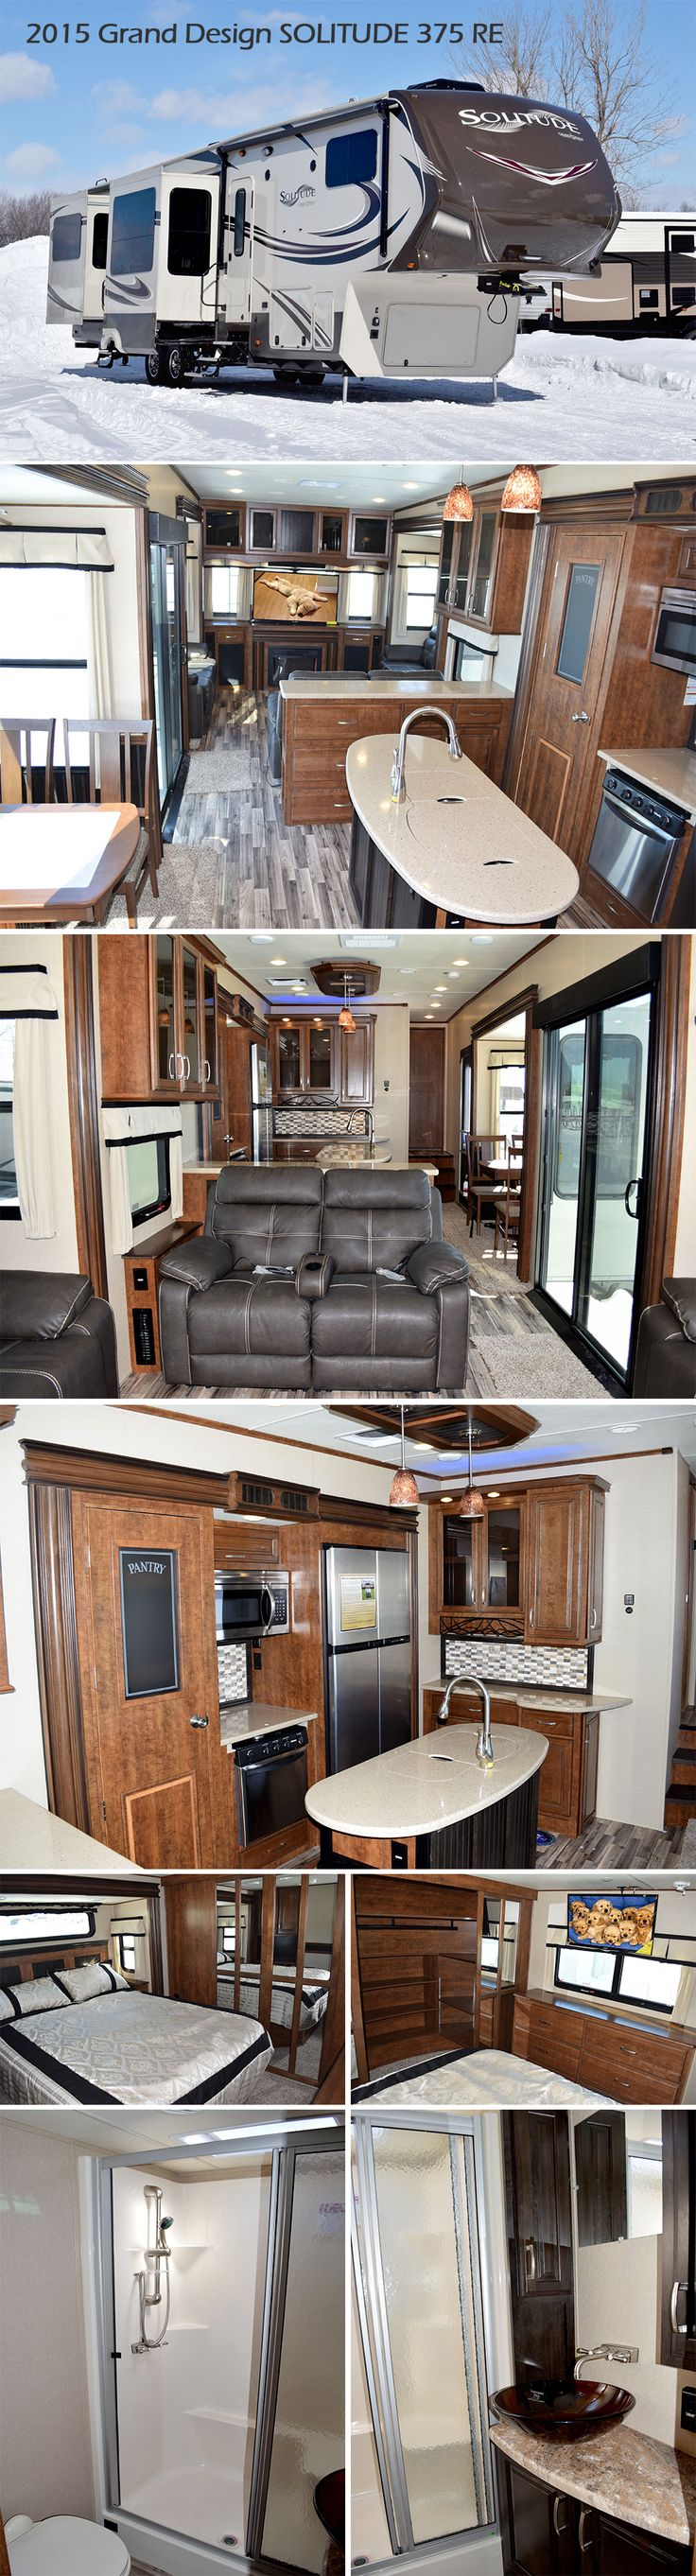 "2015 Grand Design SOLITUDE 375RE Fifth Wheel. If more room is what you desire, Solitude is the most spacious Extended Stay Fifth Wheel ever built! The Solitude RV delivers taller ceilings, taller, deeper cabinets, larger scenic window areas, a full 6' 8"" tall slide-out, and a body width that measures a full 101 inches! You may be looking for an extended stay unit to live in for months at a time... but you just may want to live in this one for the rest of your life!"